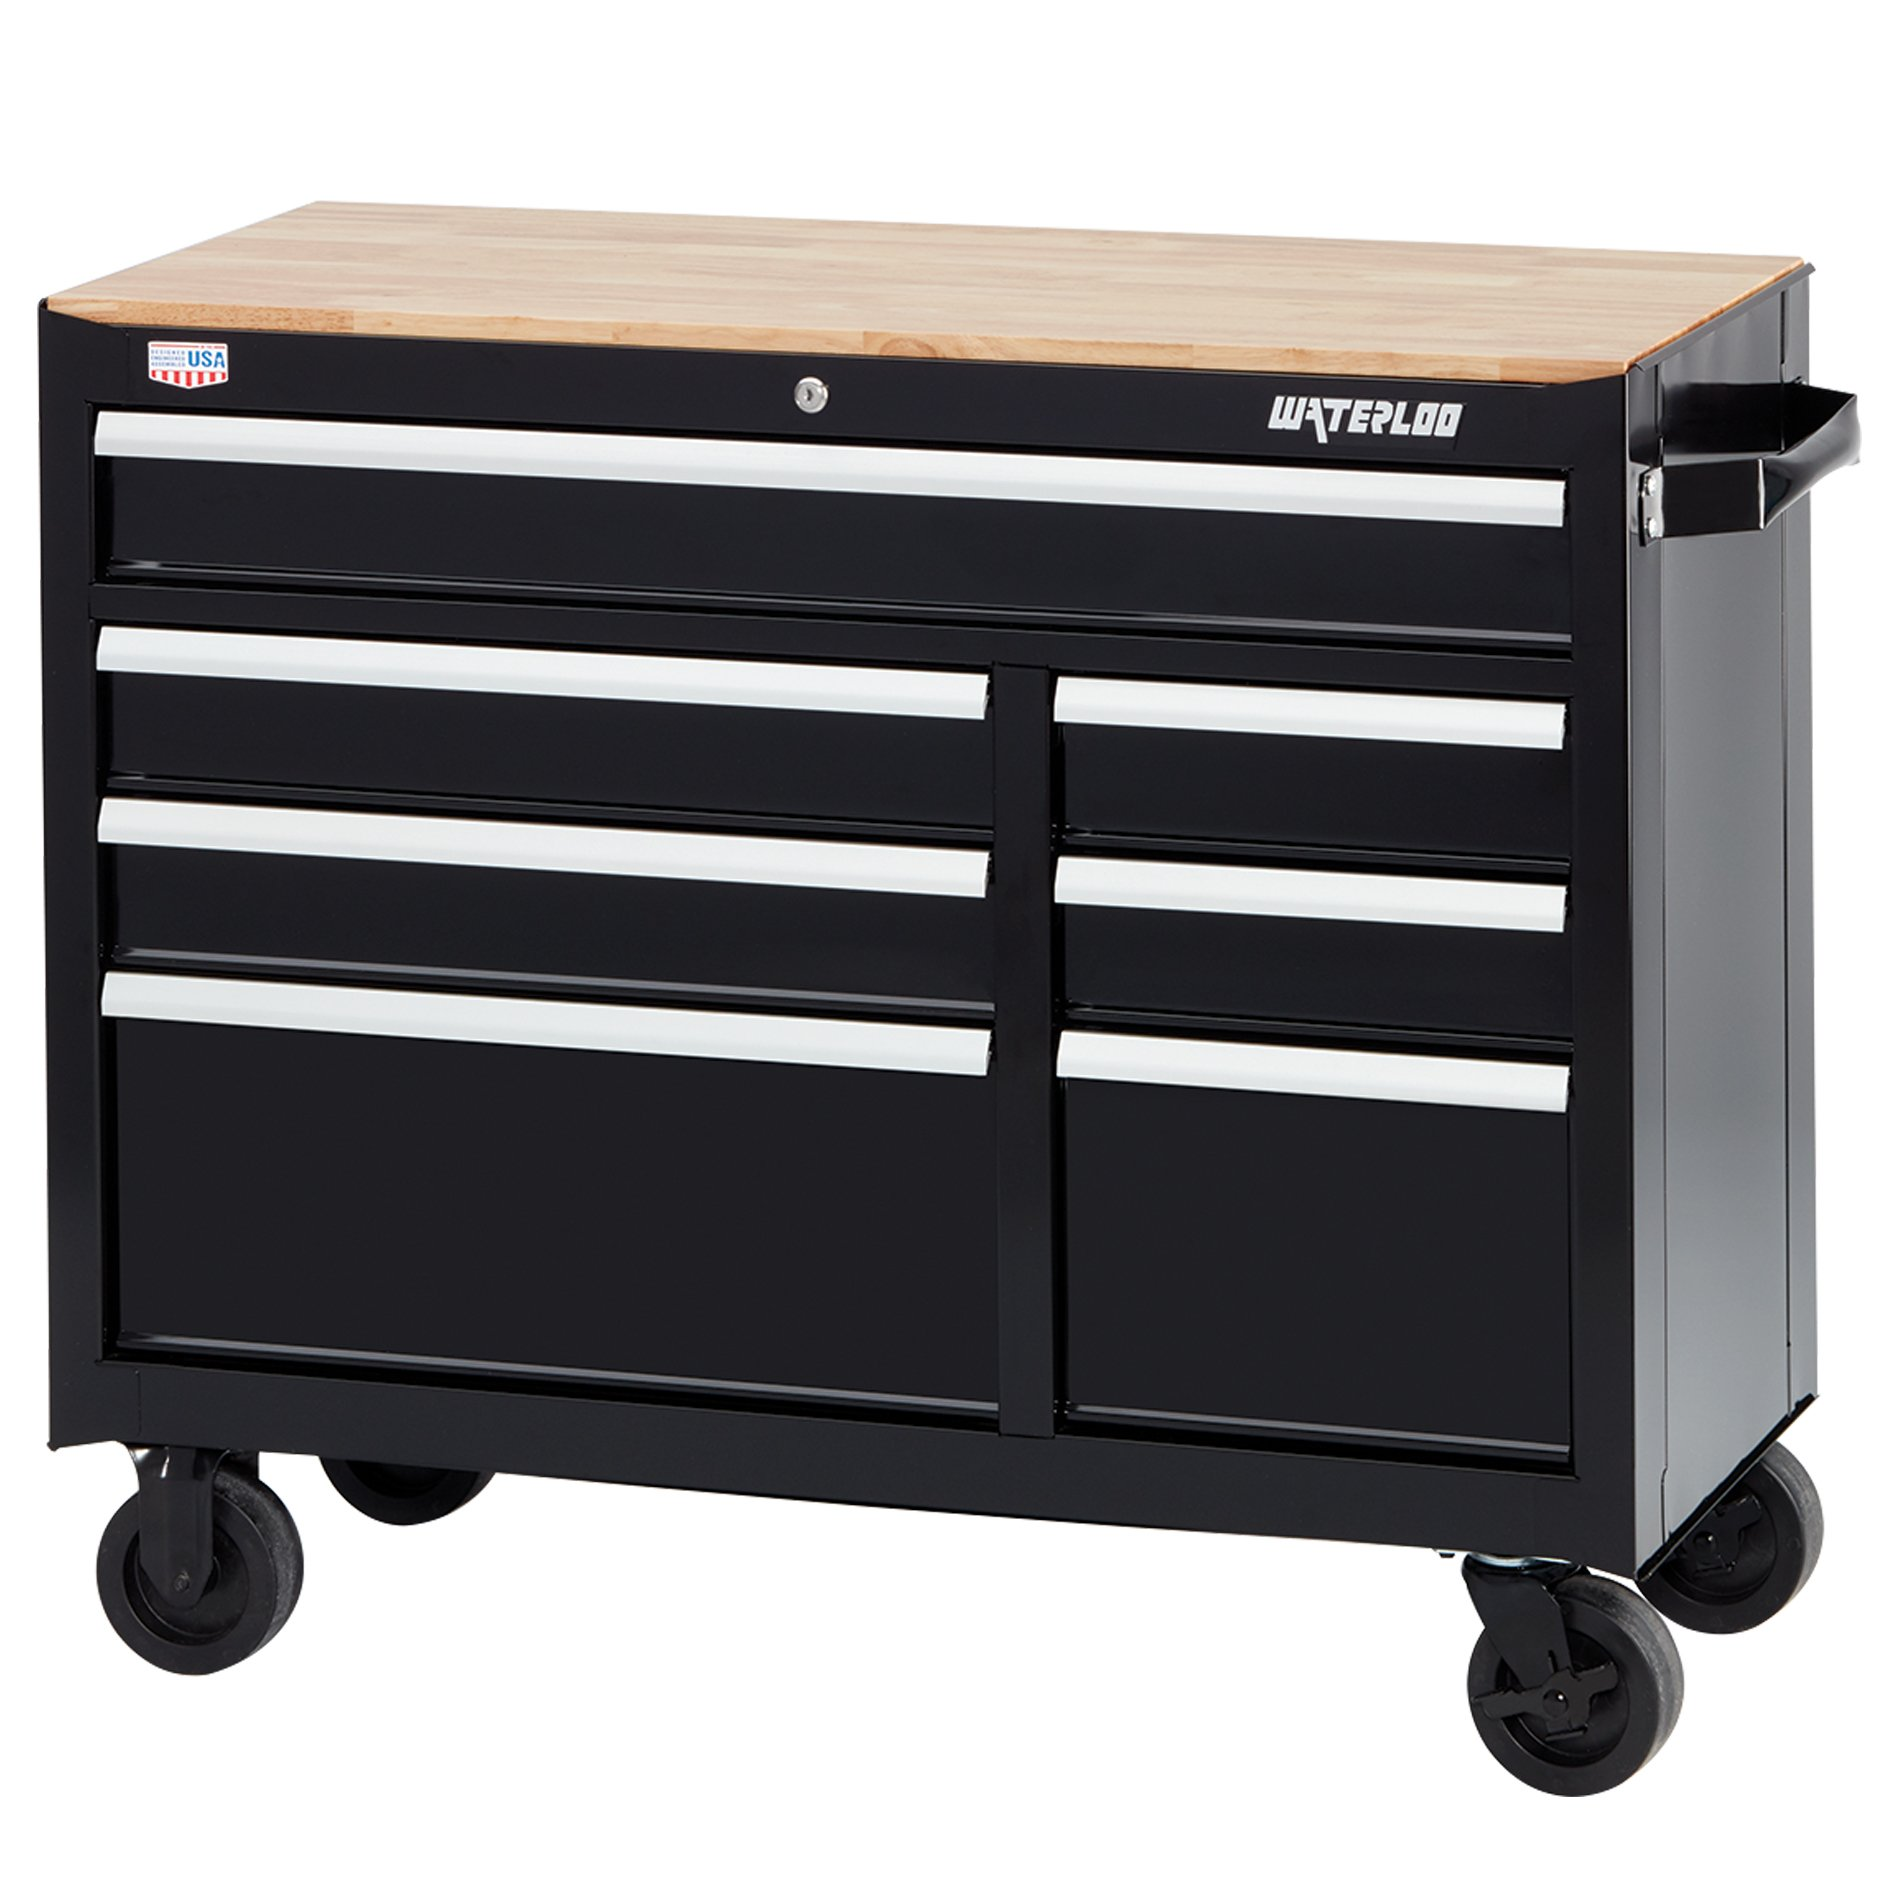 Waterloo R3W-417B W300 Series 7-Drawer Mobile Workbench with Butcher Block Work Surface, 41'' by Waterloo (Image #1)